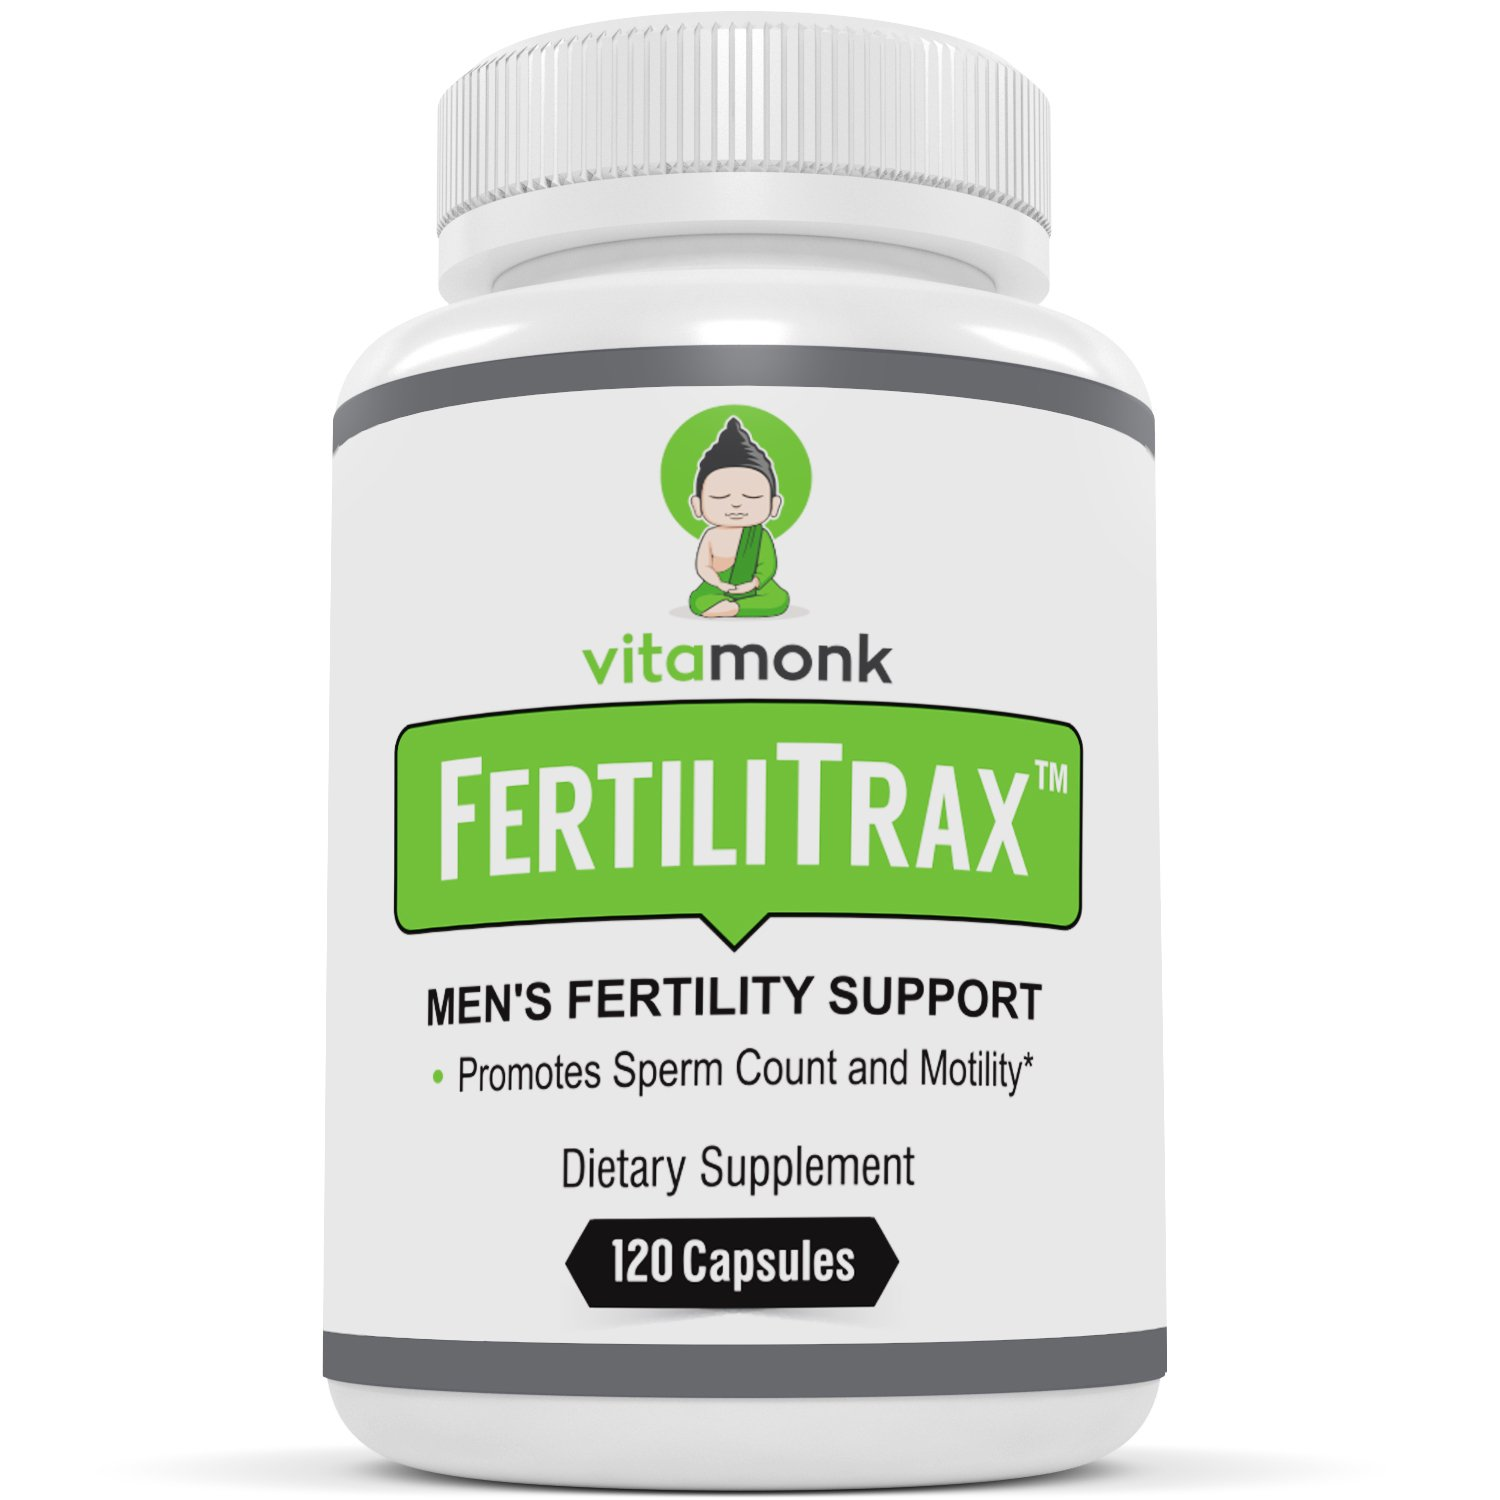 FertiliTraxTM Men's Fertility Support - Fertility Blend for Men by VitaMonkTM - Effective Natural Supplements Formula to Aid Healthy Fertility for Males - 120 Capsules - Natural Supplement by VitaMonk